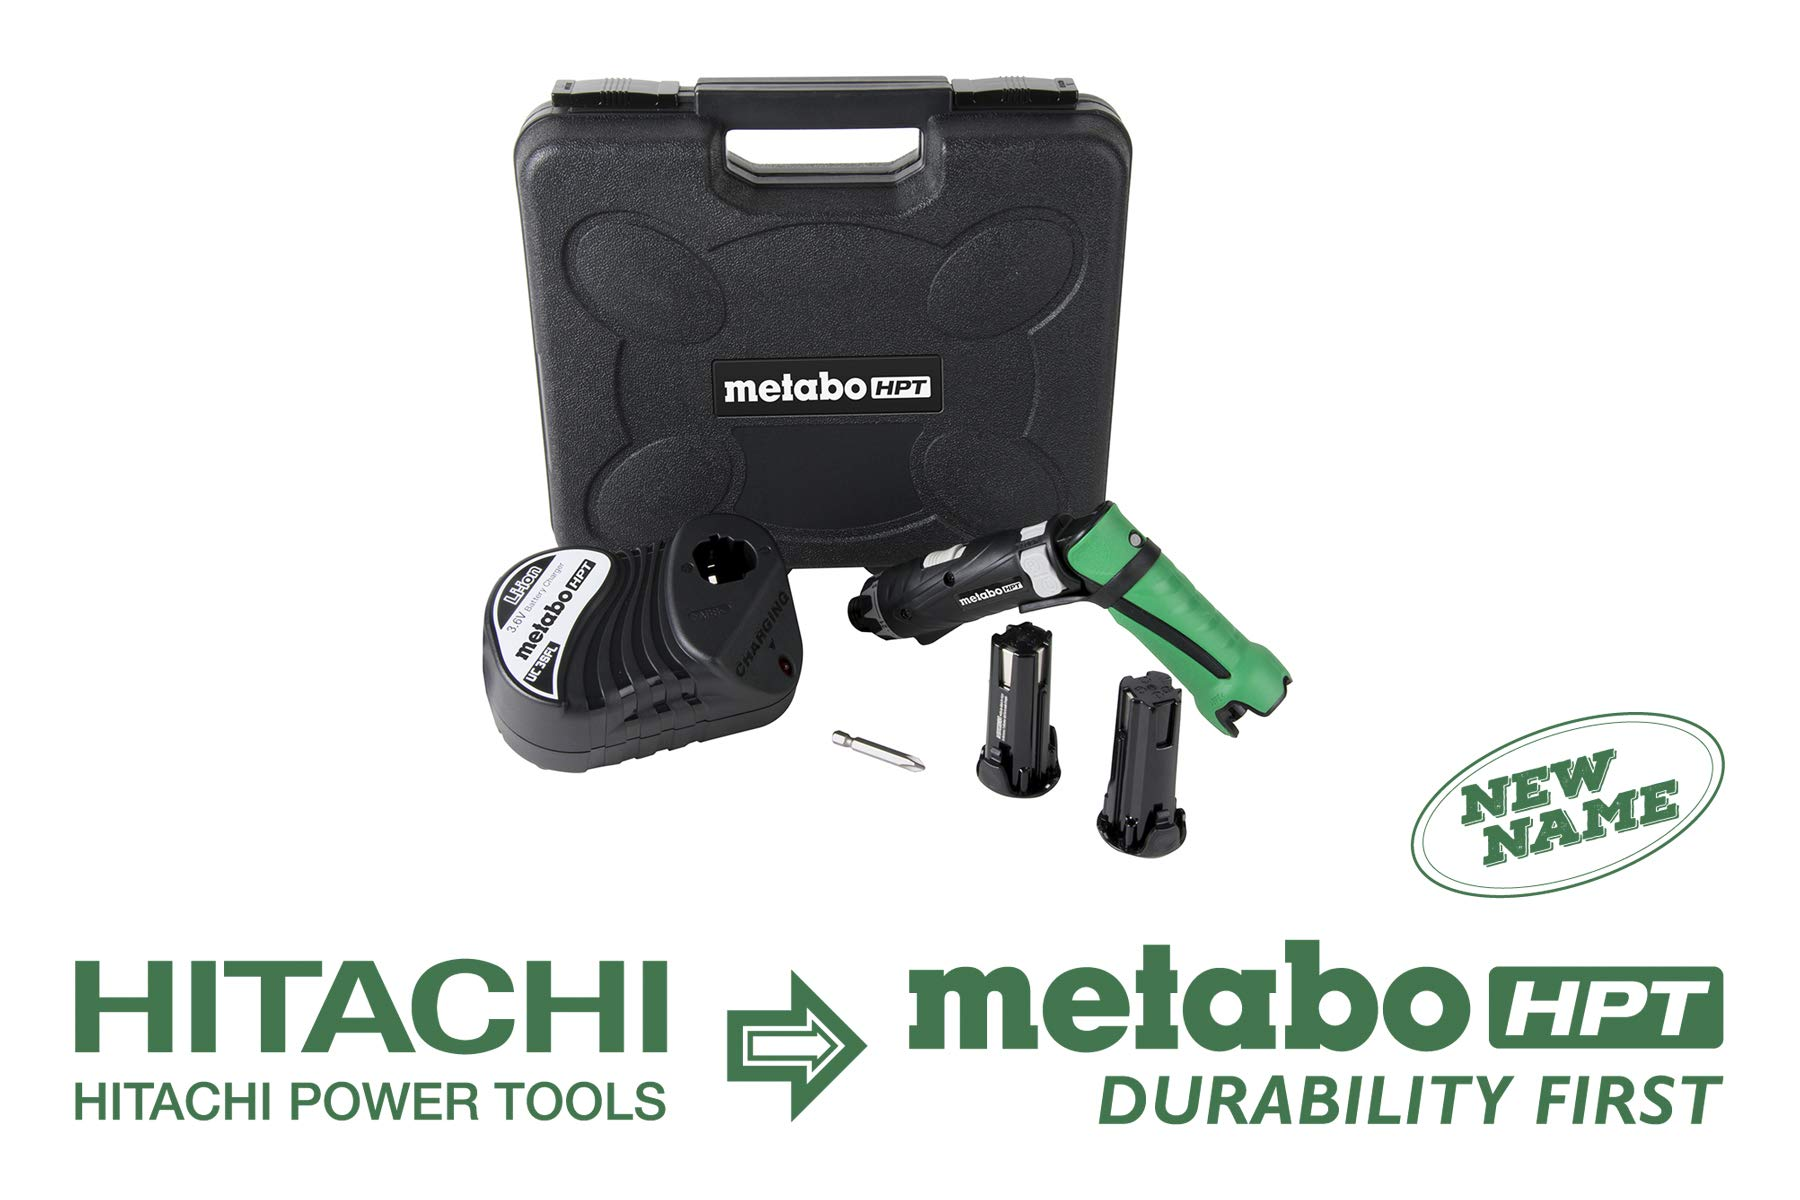 Metabo HPT DB3DL2 3.6V Cordless Screwdriver Kit, 2 Lithium Ion Batteries, Dual Position Handle, LED Light, 21 Clutch Settings, Forward/Reverse, Lifetime Tool Warranty by Metabo HPT